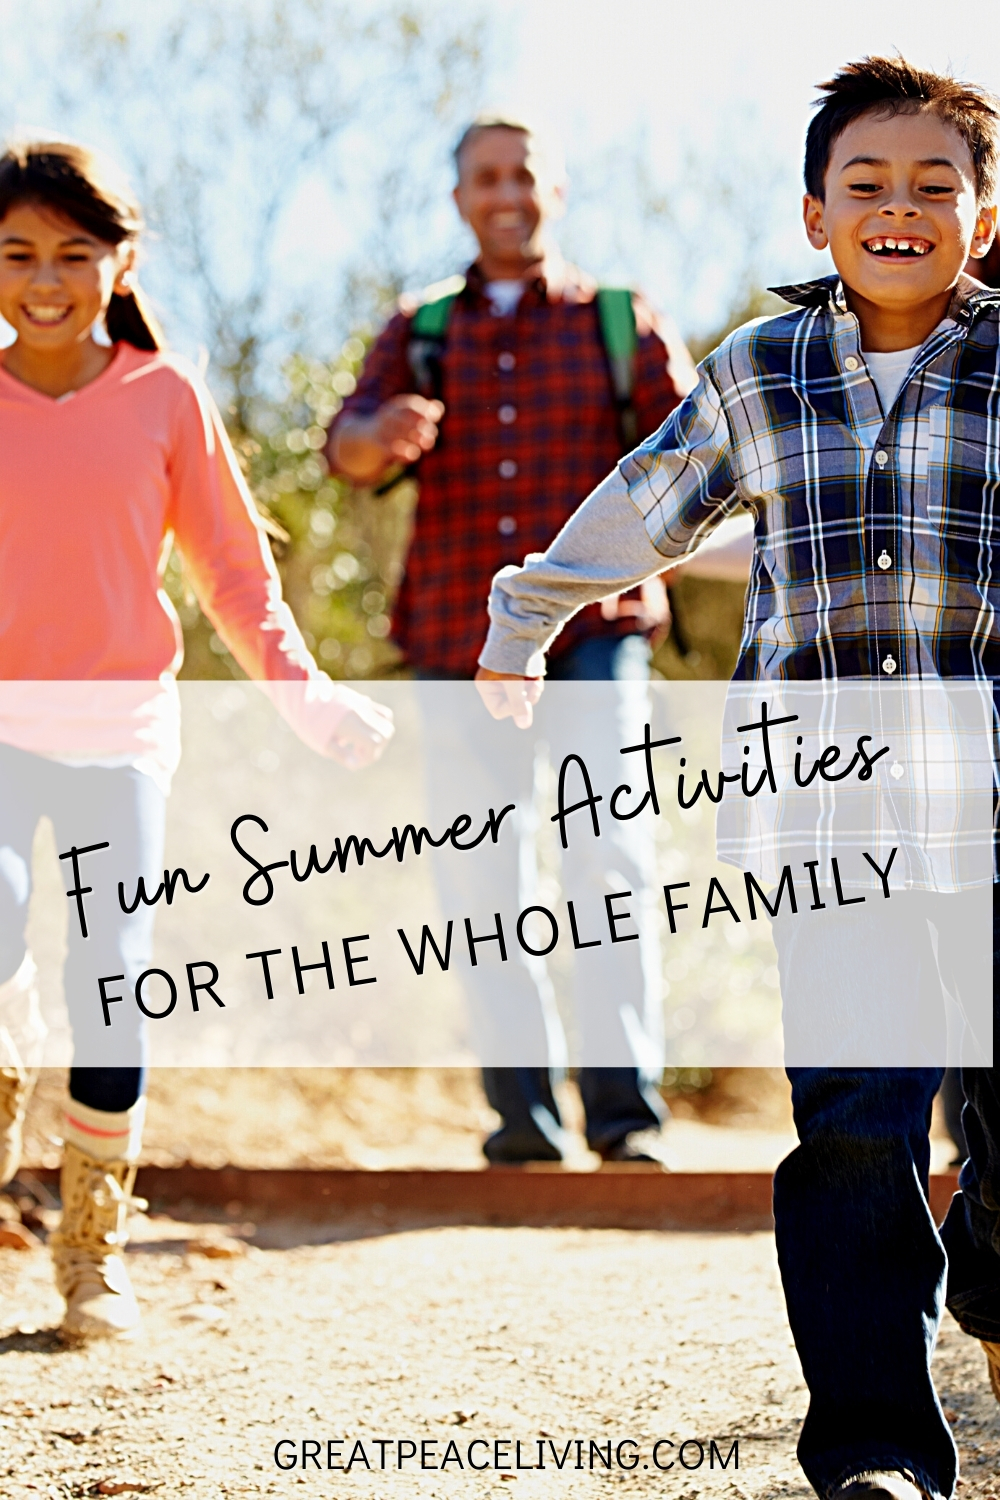 Fun Summer Activities For The Whole Family | GreatPeaceLiving.com